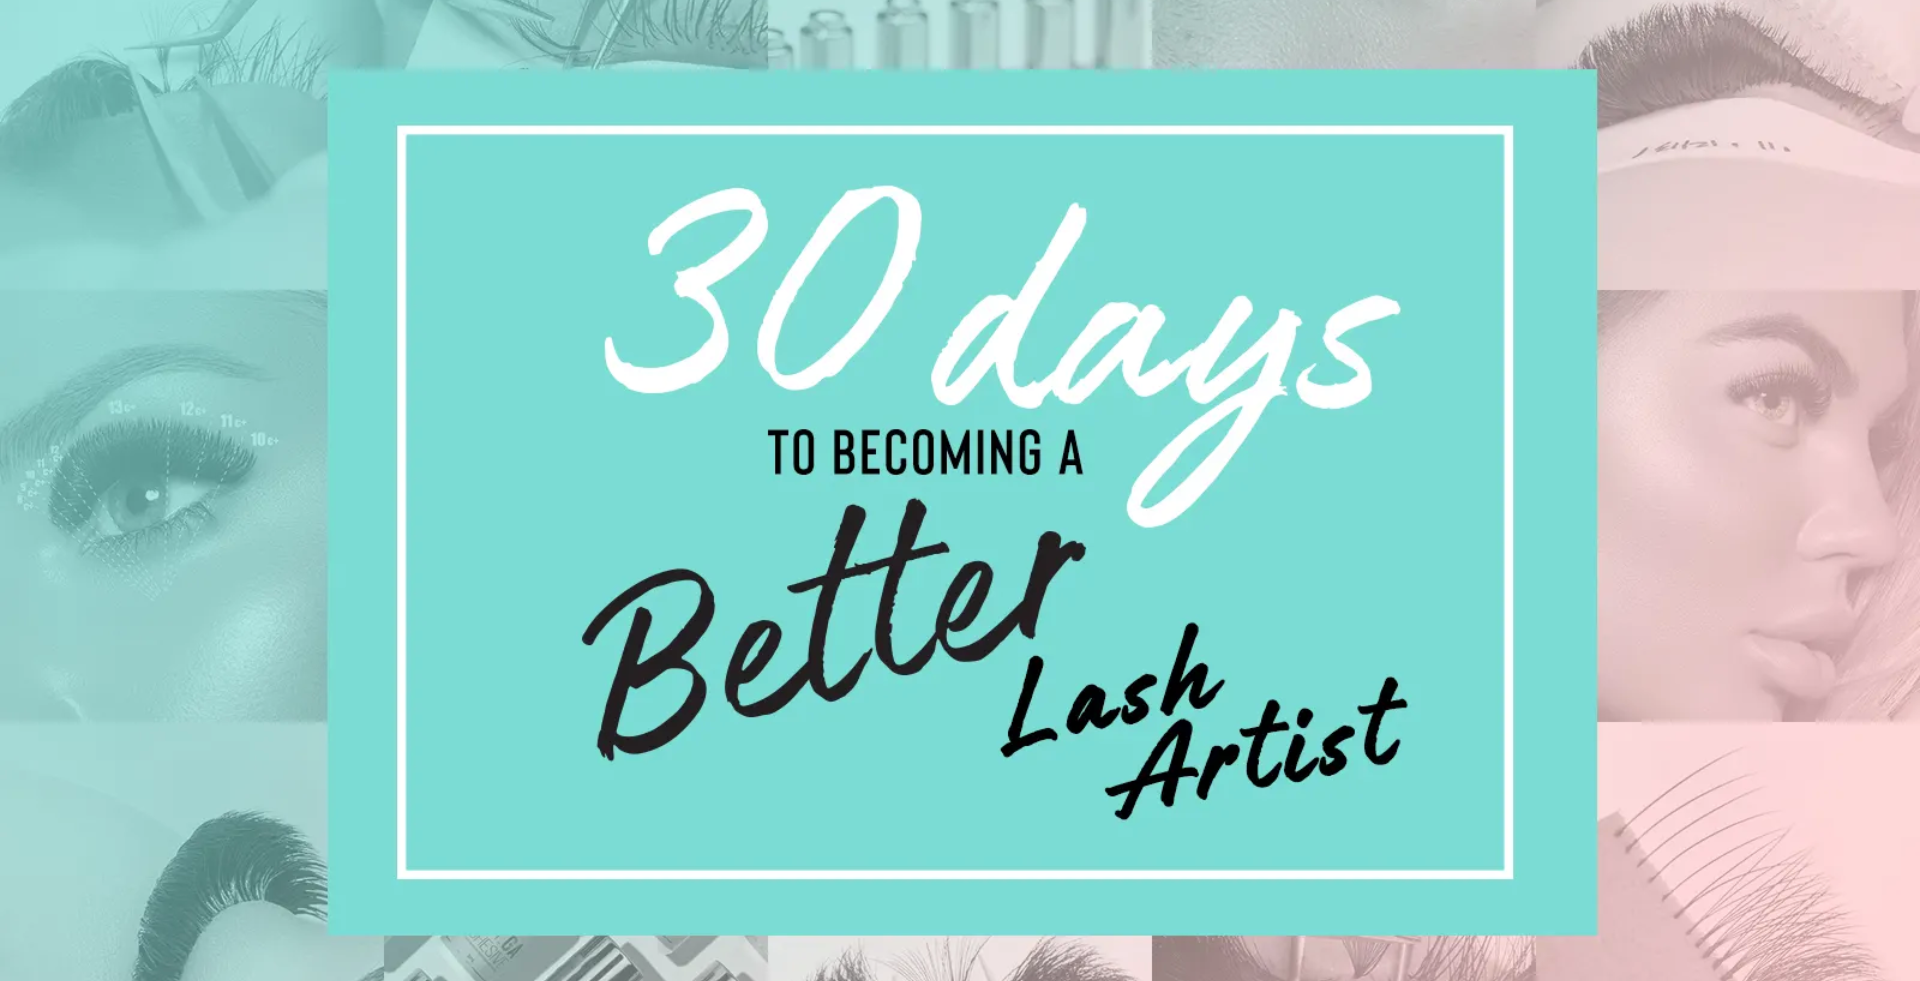 30 day to become a better lash artist #lblalevelupAU